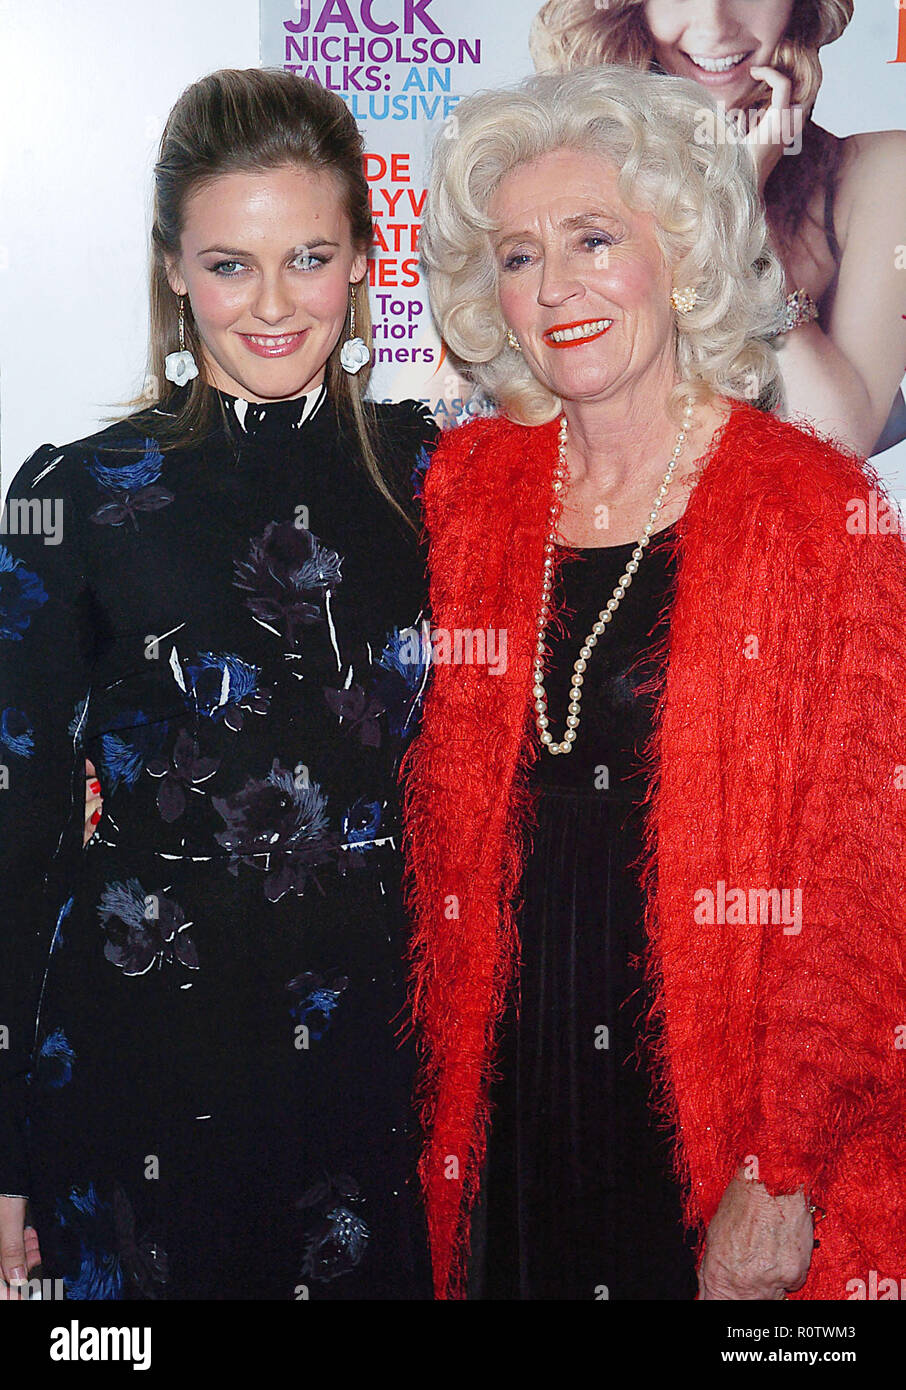 Alicia Silverstone and mom arriving at the Hollywood Life Magazine's 5th Annual Breakthrough of the Year Awards at the Henry Fonda Theatre in Los Ange - Stock Image